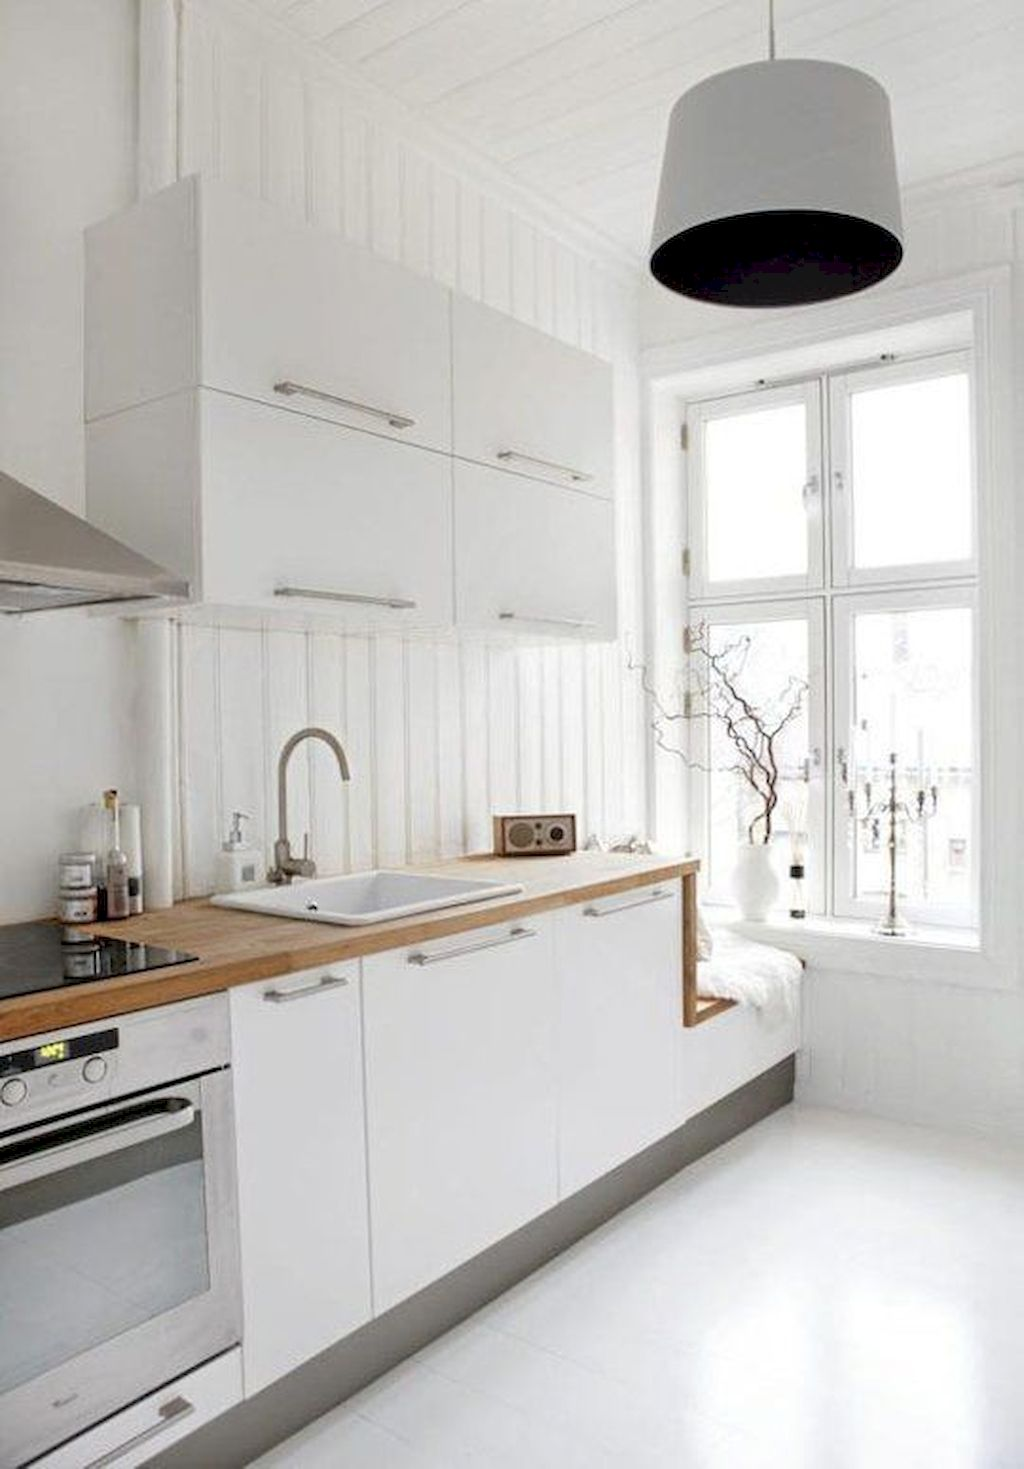 Kitchen Plan And Design For Small Room (169)